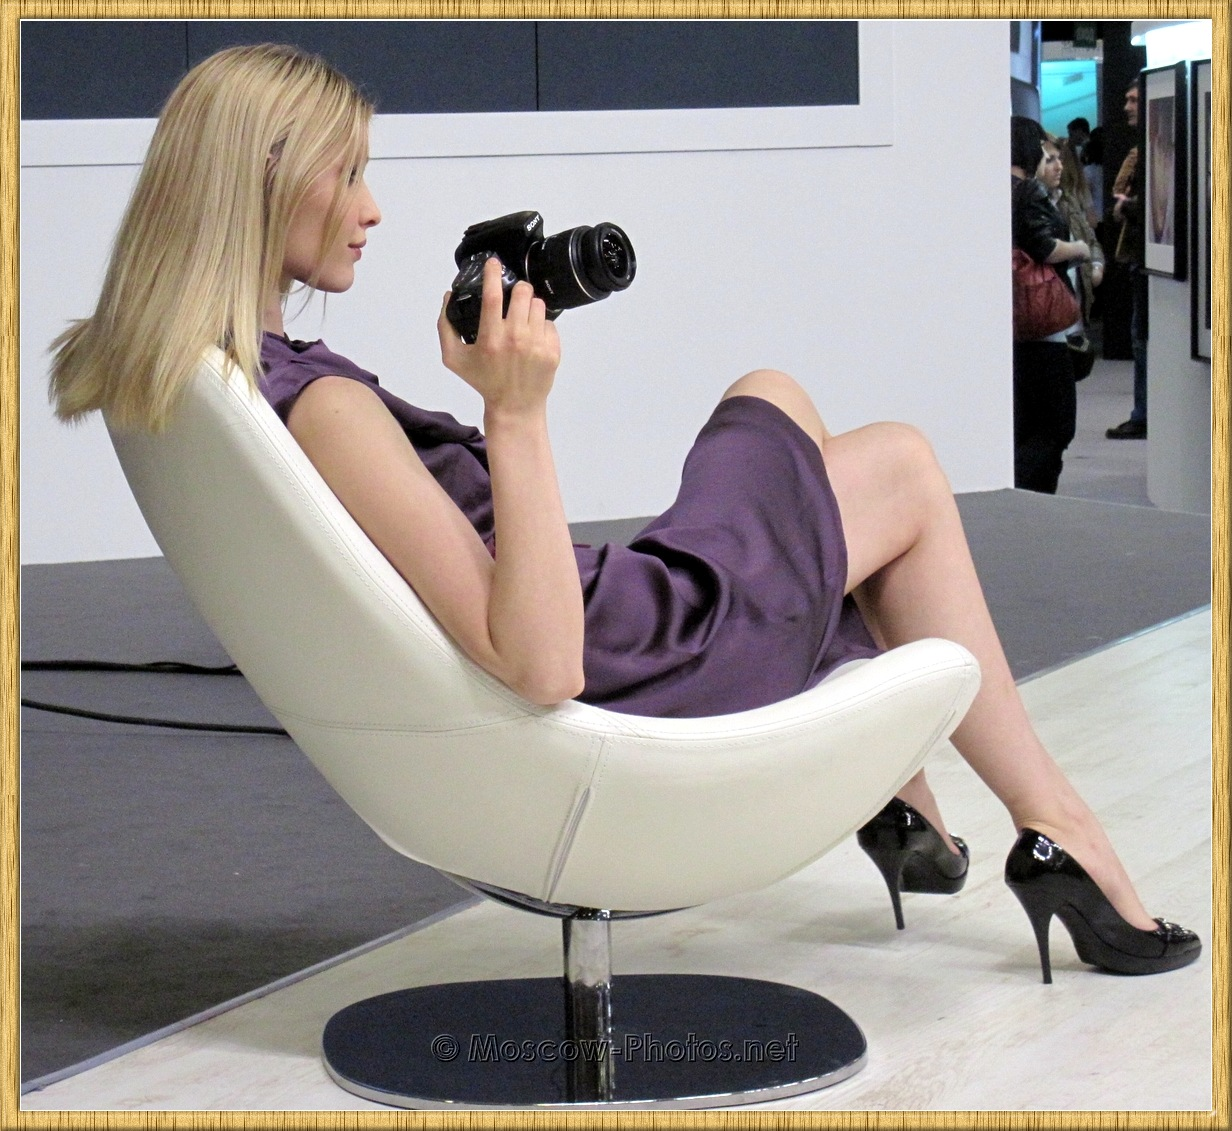 Blonde Moscow Model With Photo Camera